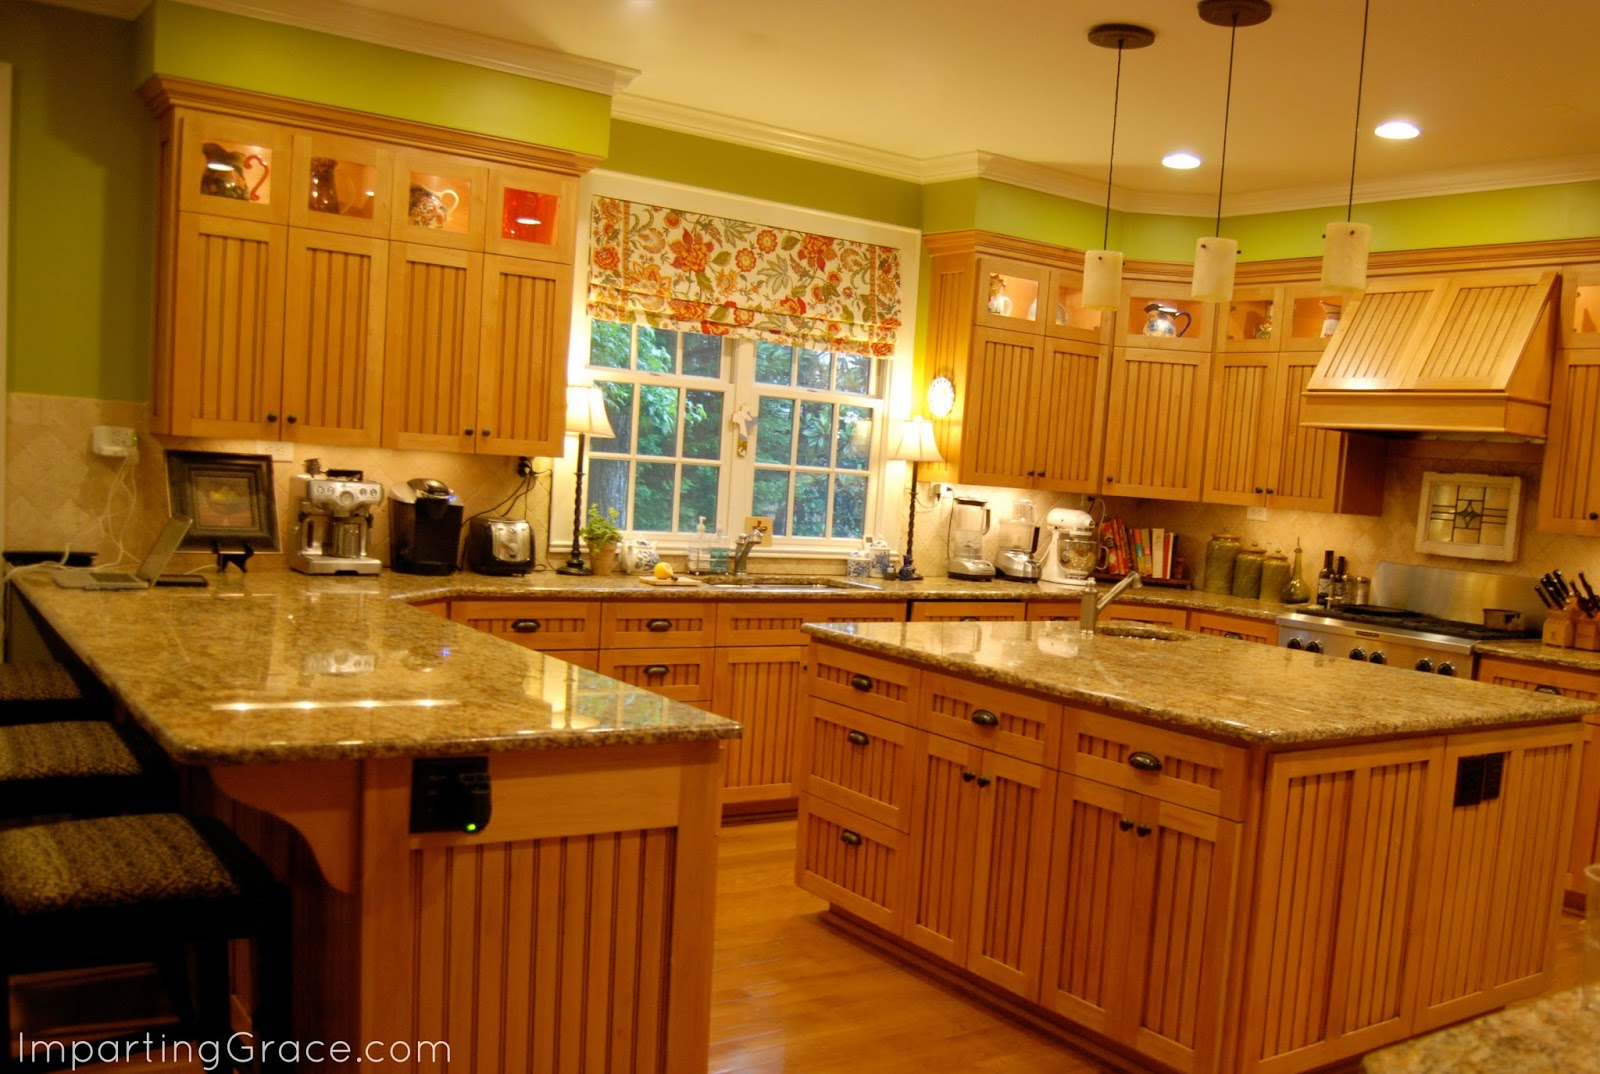 Kitchen Design Help imparting grace: help with kitchen design decision